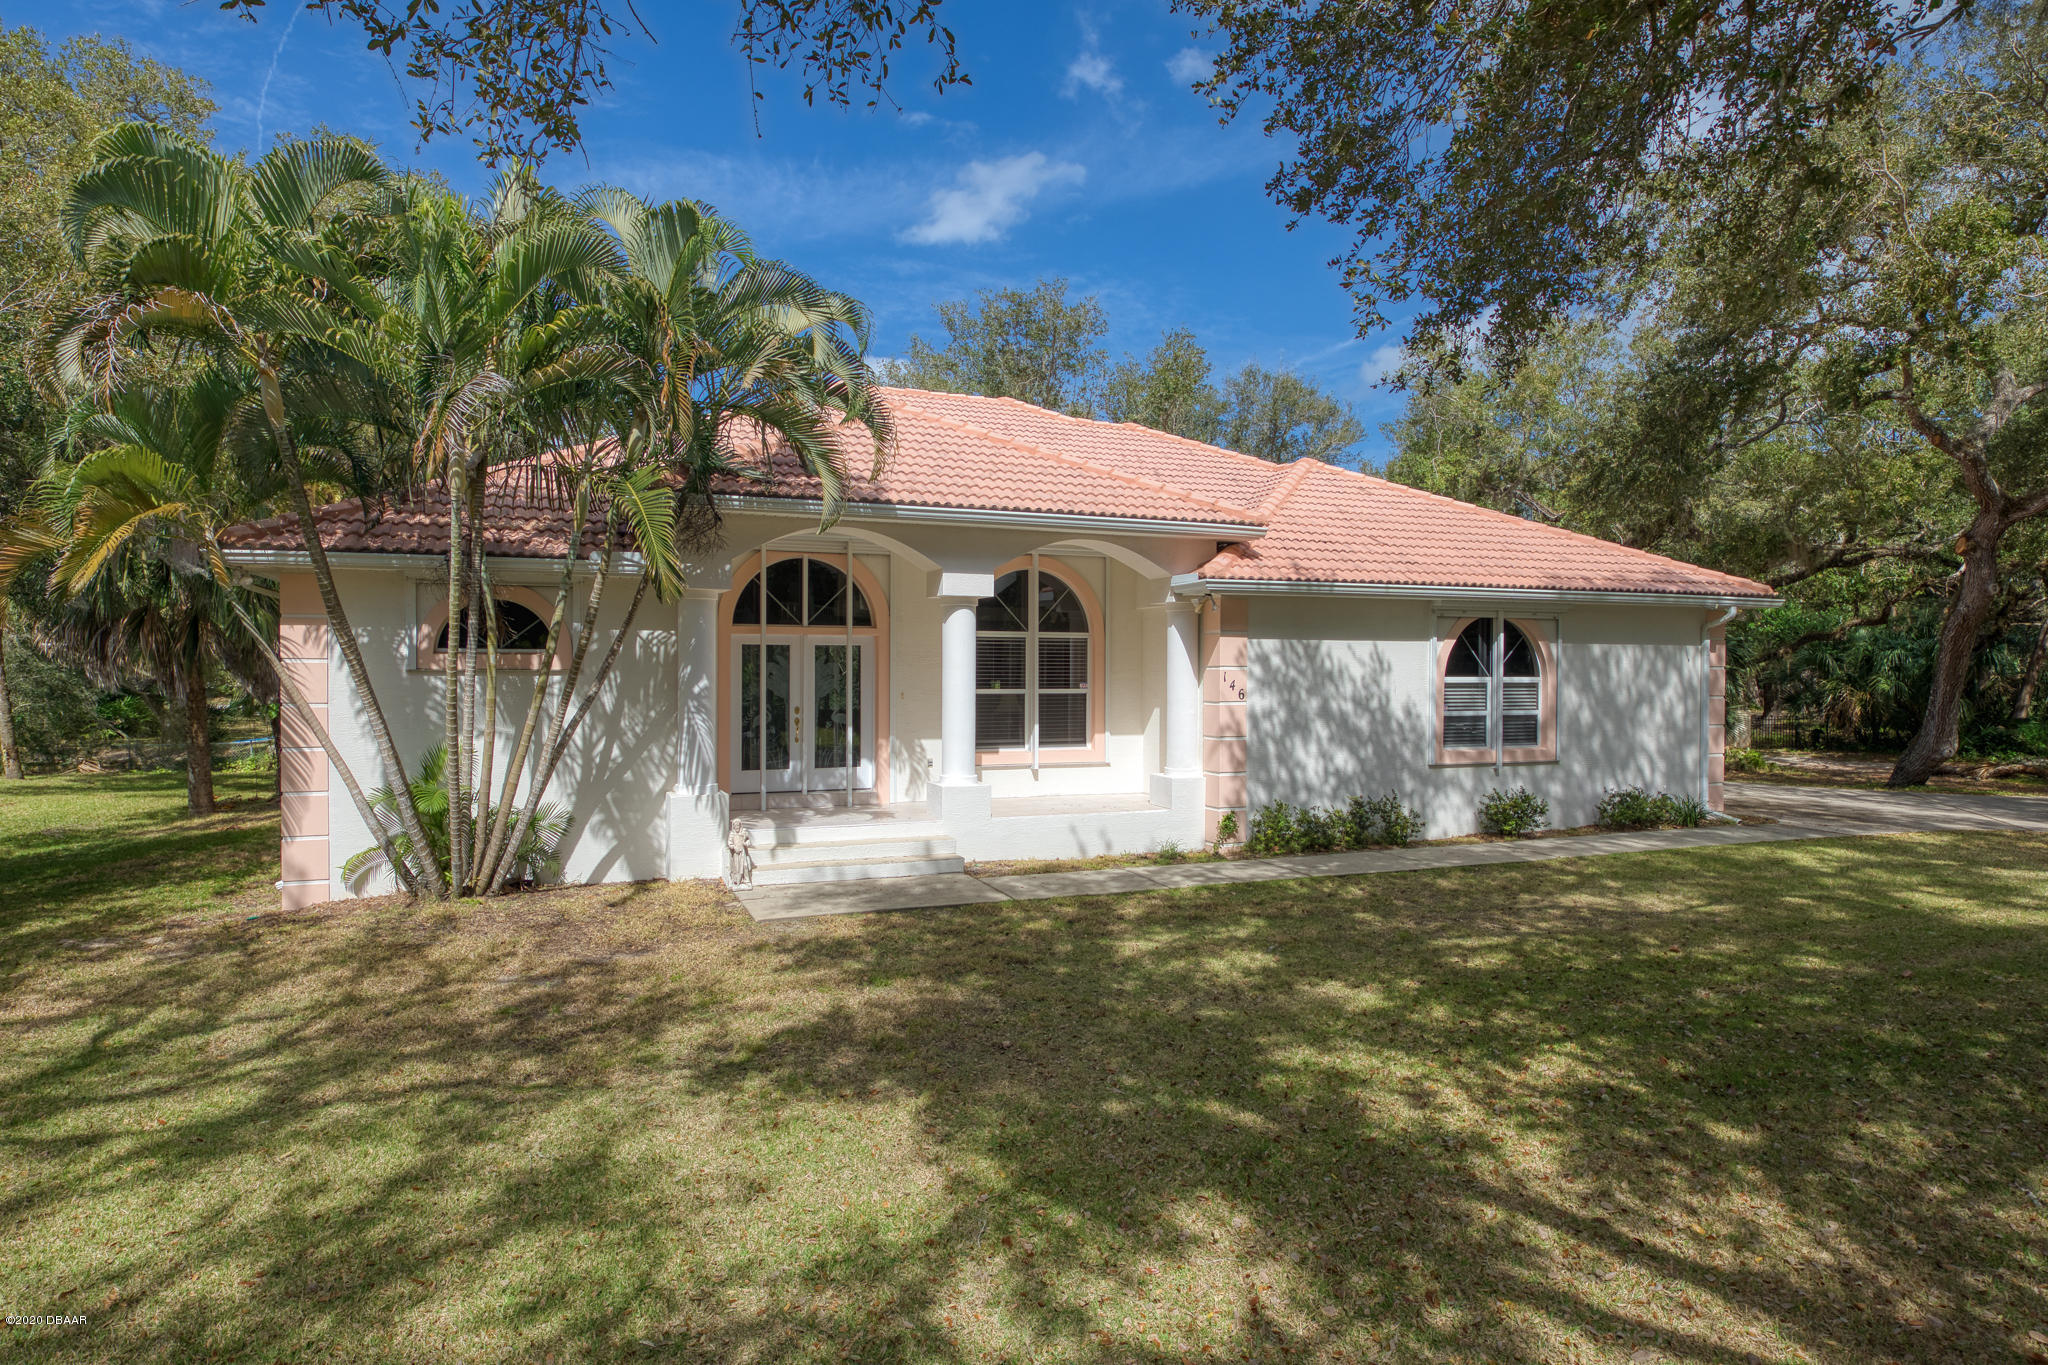 Photo of 146 Bounty Lane, Ponce Inlet, FL 32127